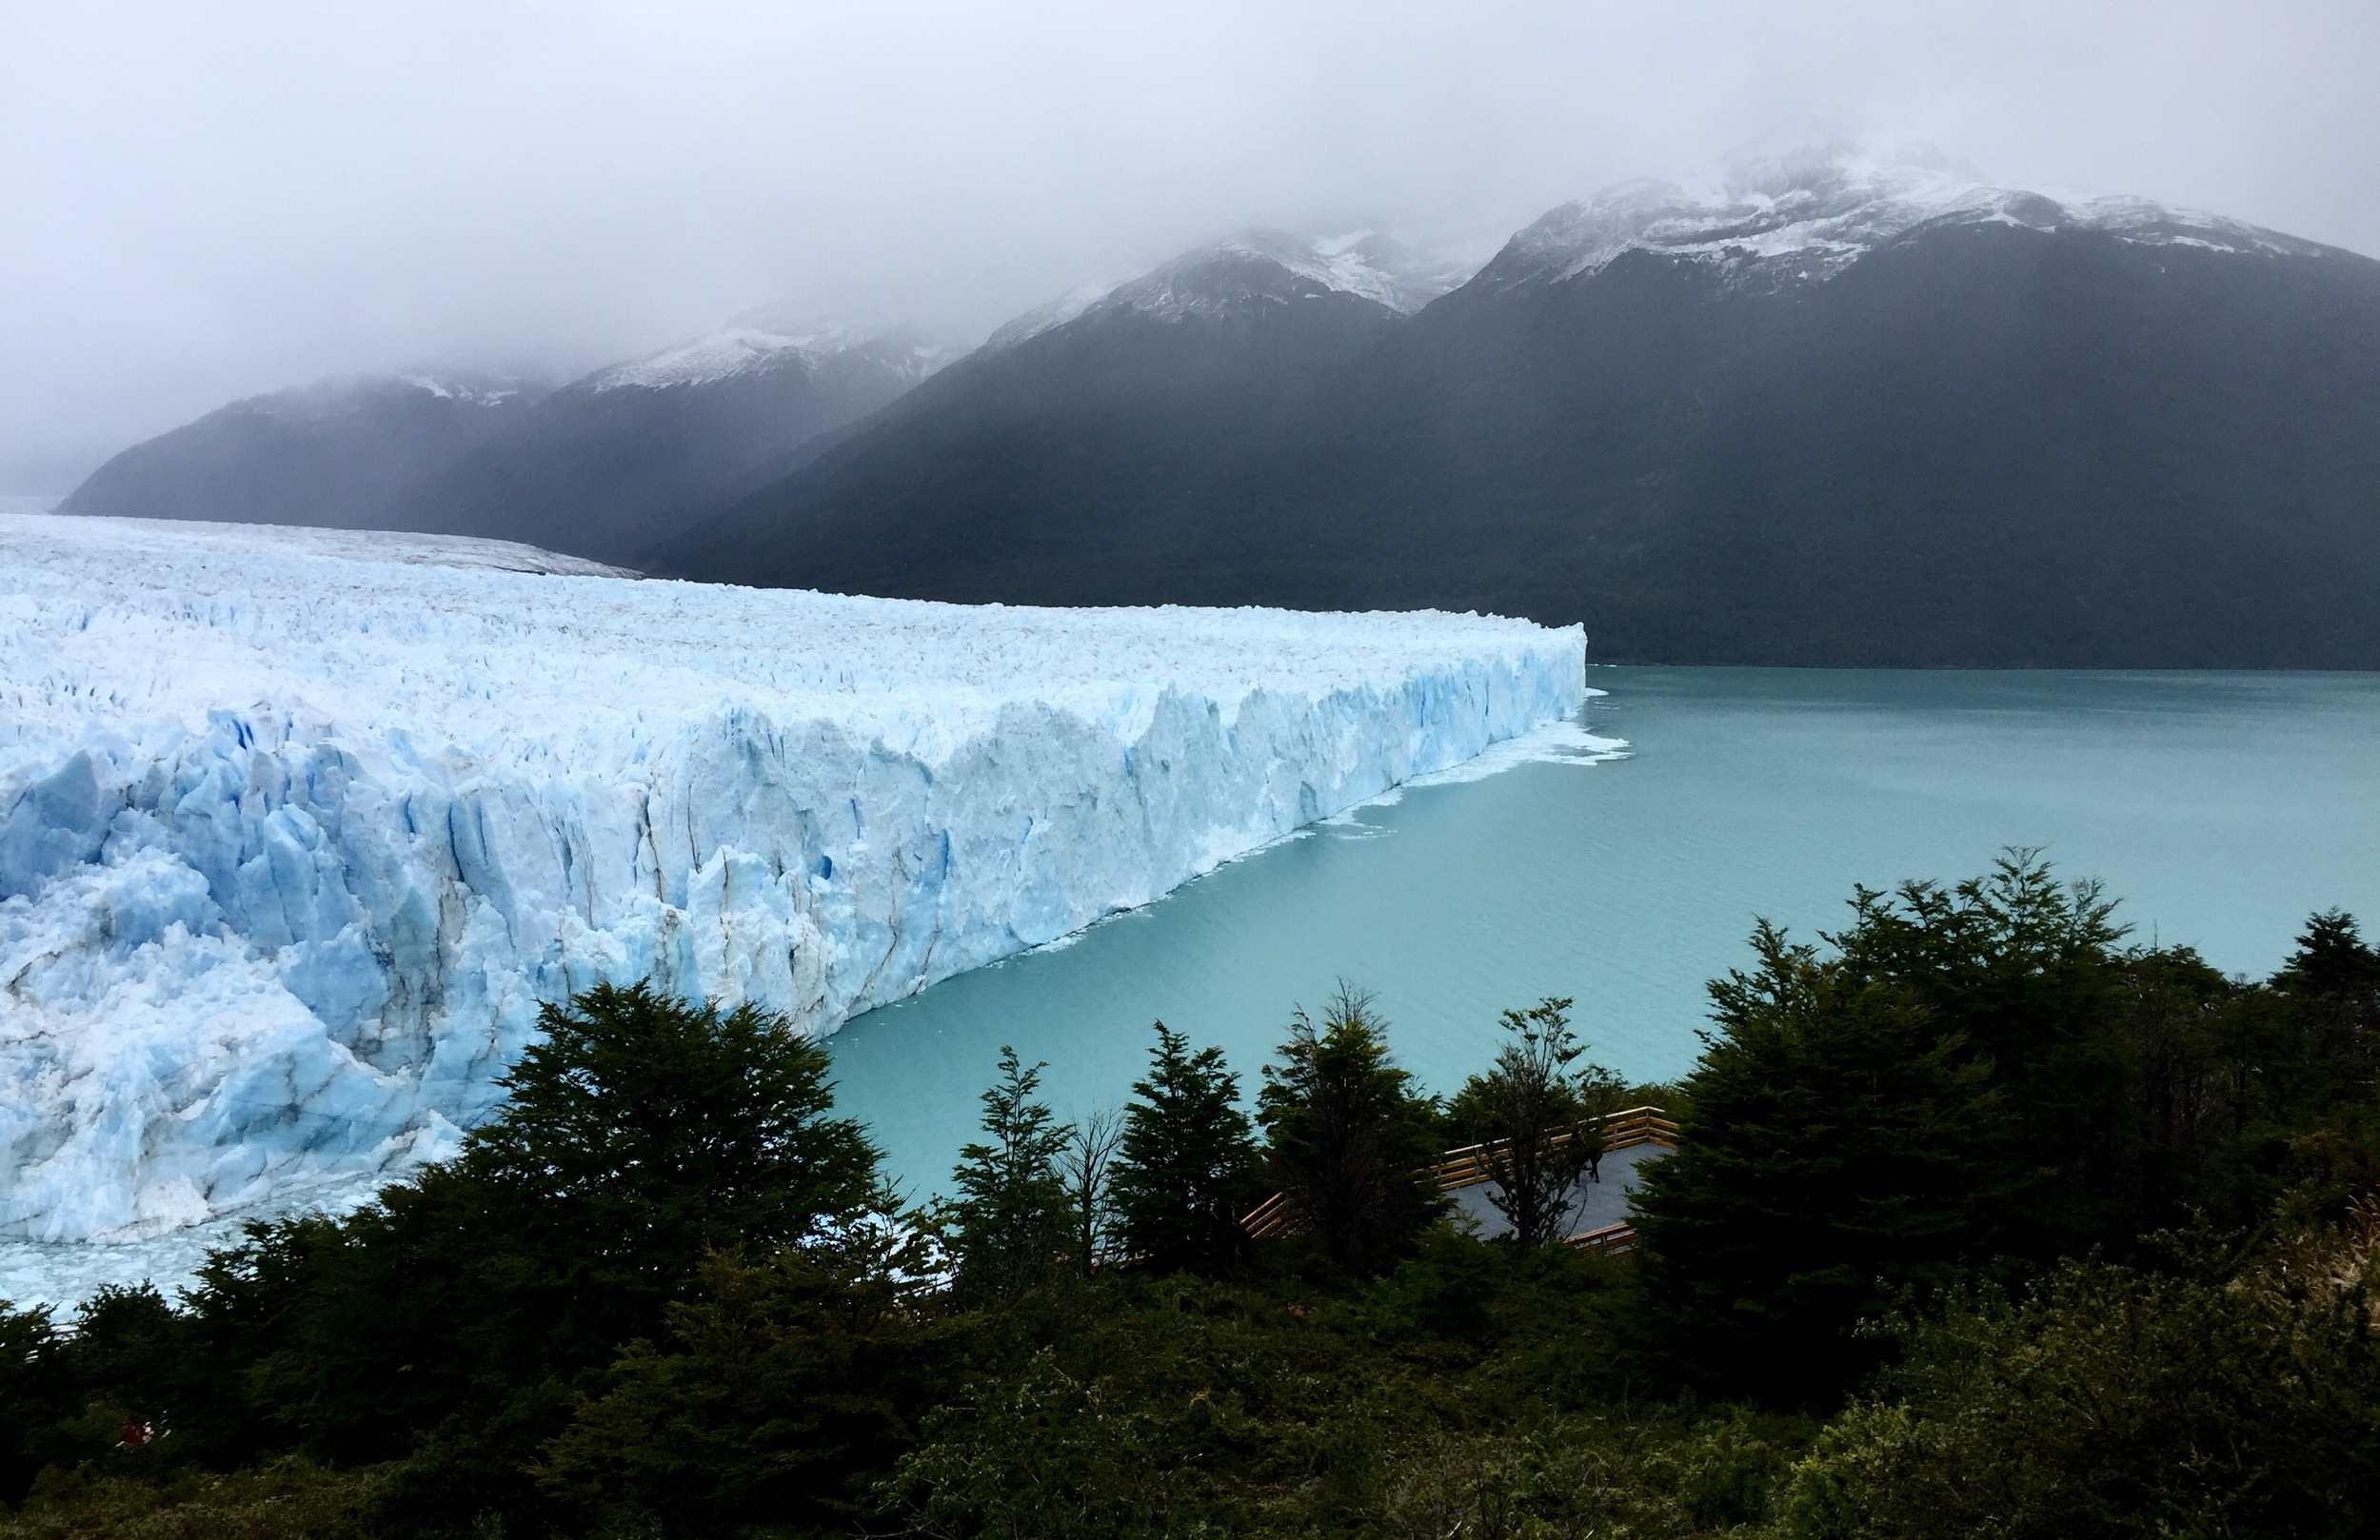 The ice dam at the face of the Perito Moreno Glacier in southern Patagonia collapsed on March 10, a month after the author had been there to see if she could witness the natural spectacle.